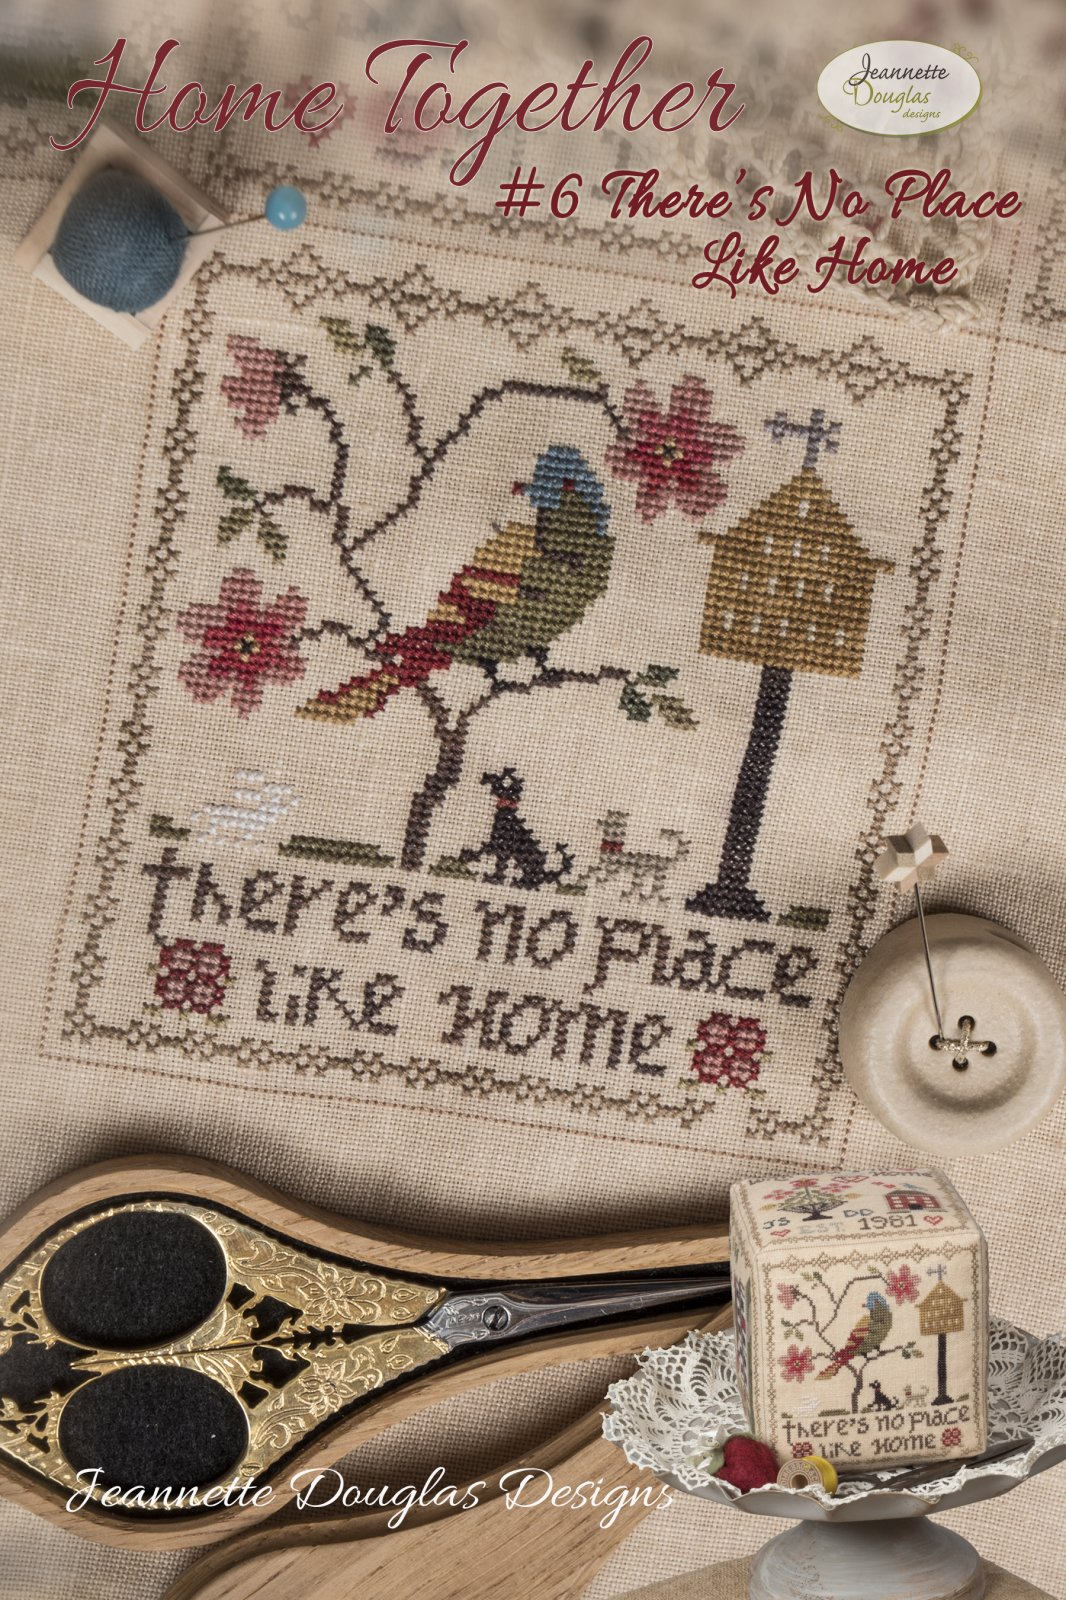 Home Together #6 There's no Place like Home chart - Jeannette Douglas